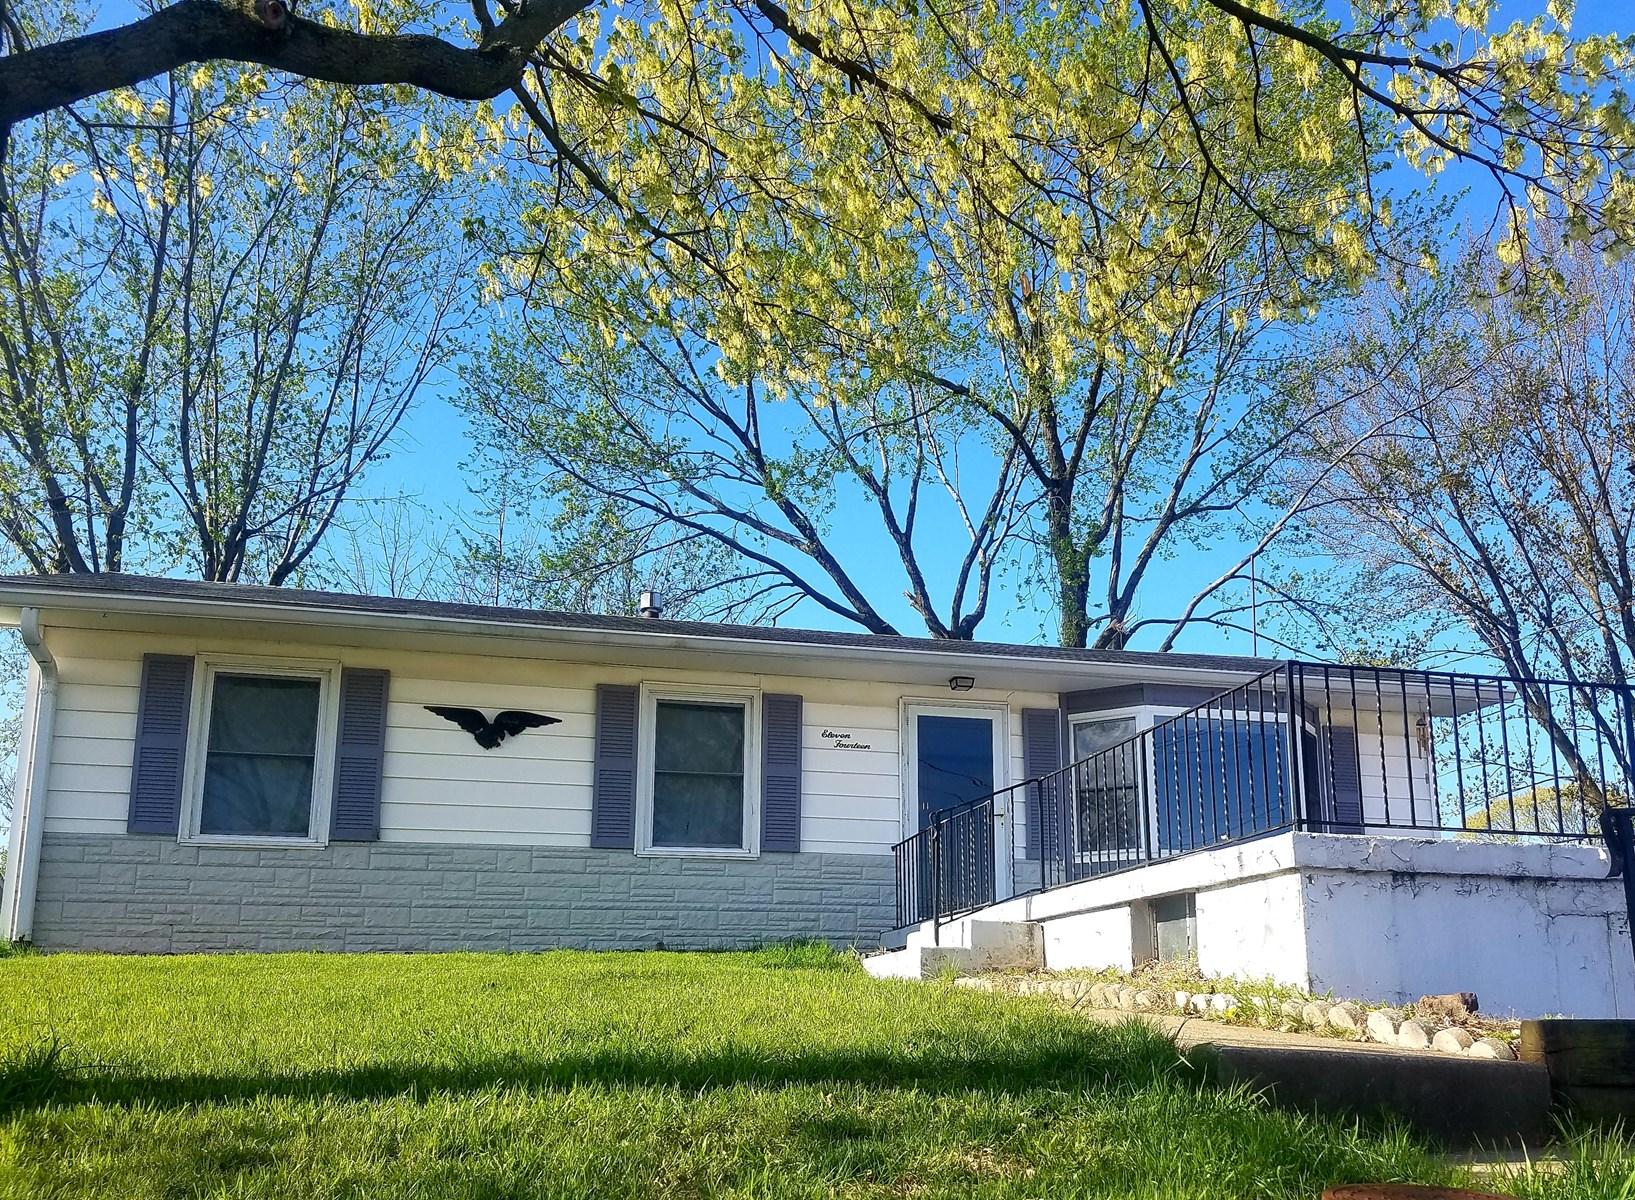 3 BR, 2 BA Starter Home on Walkout Basement in Boonville, MO